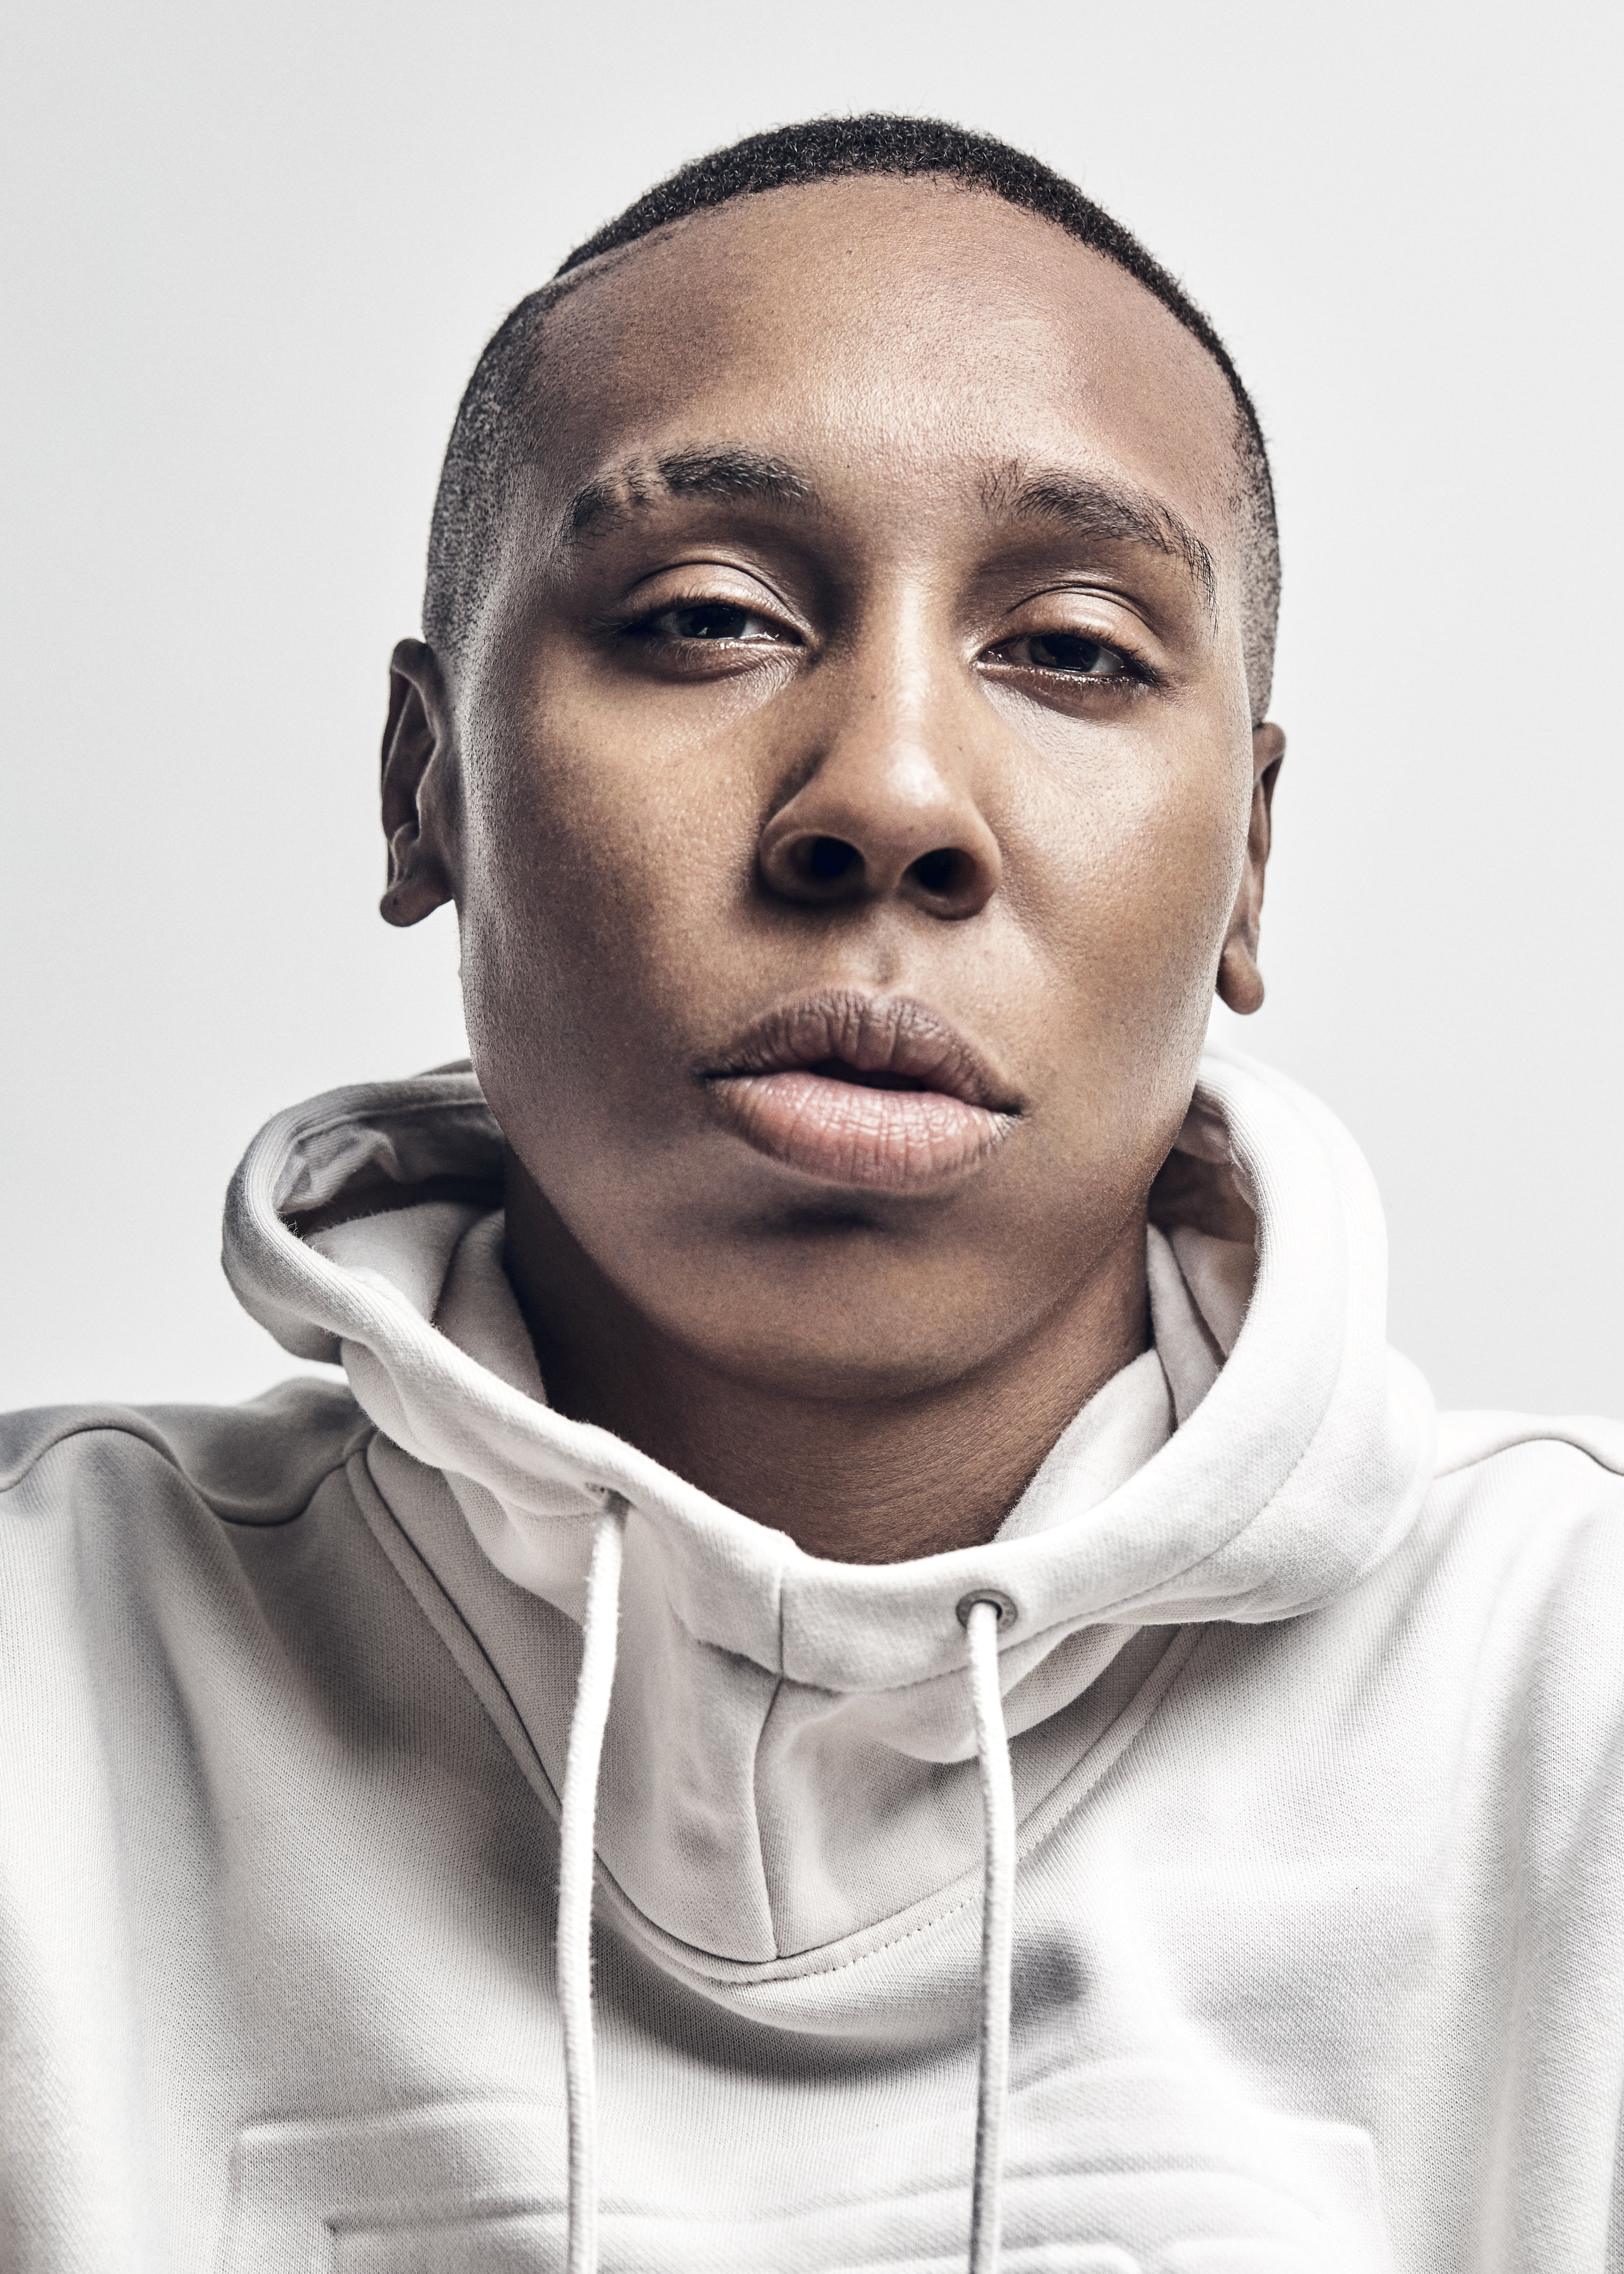 180821_05_AS_LENA_WAITHE_S002_330_V2A_RGB.jpg